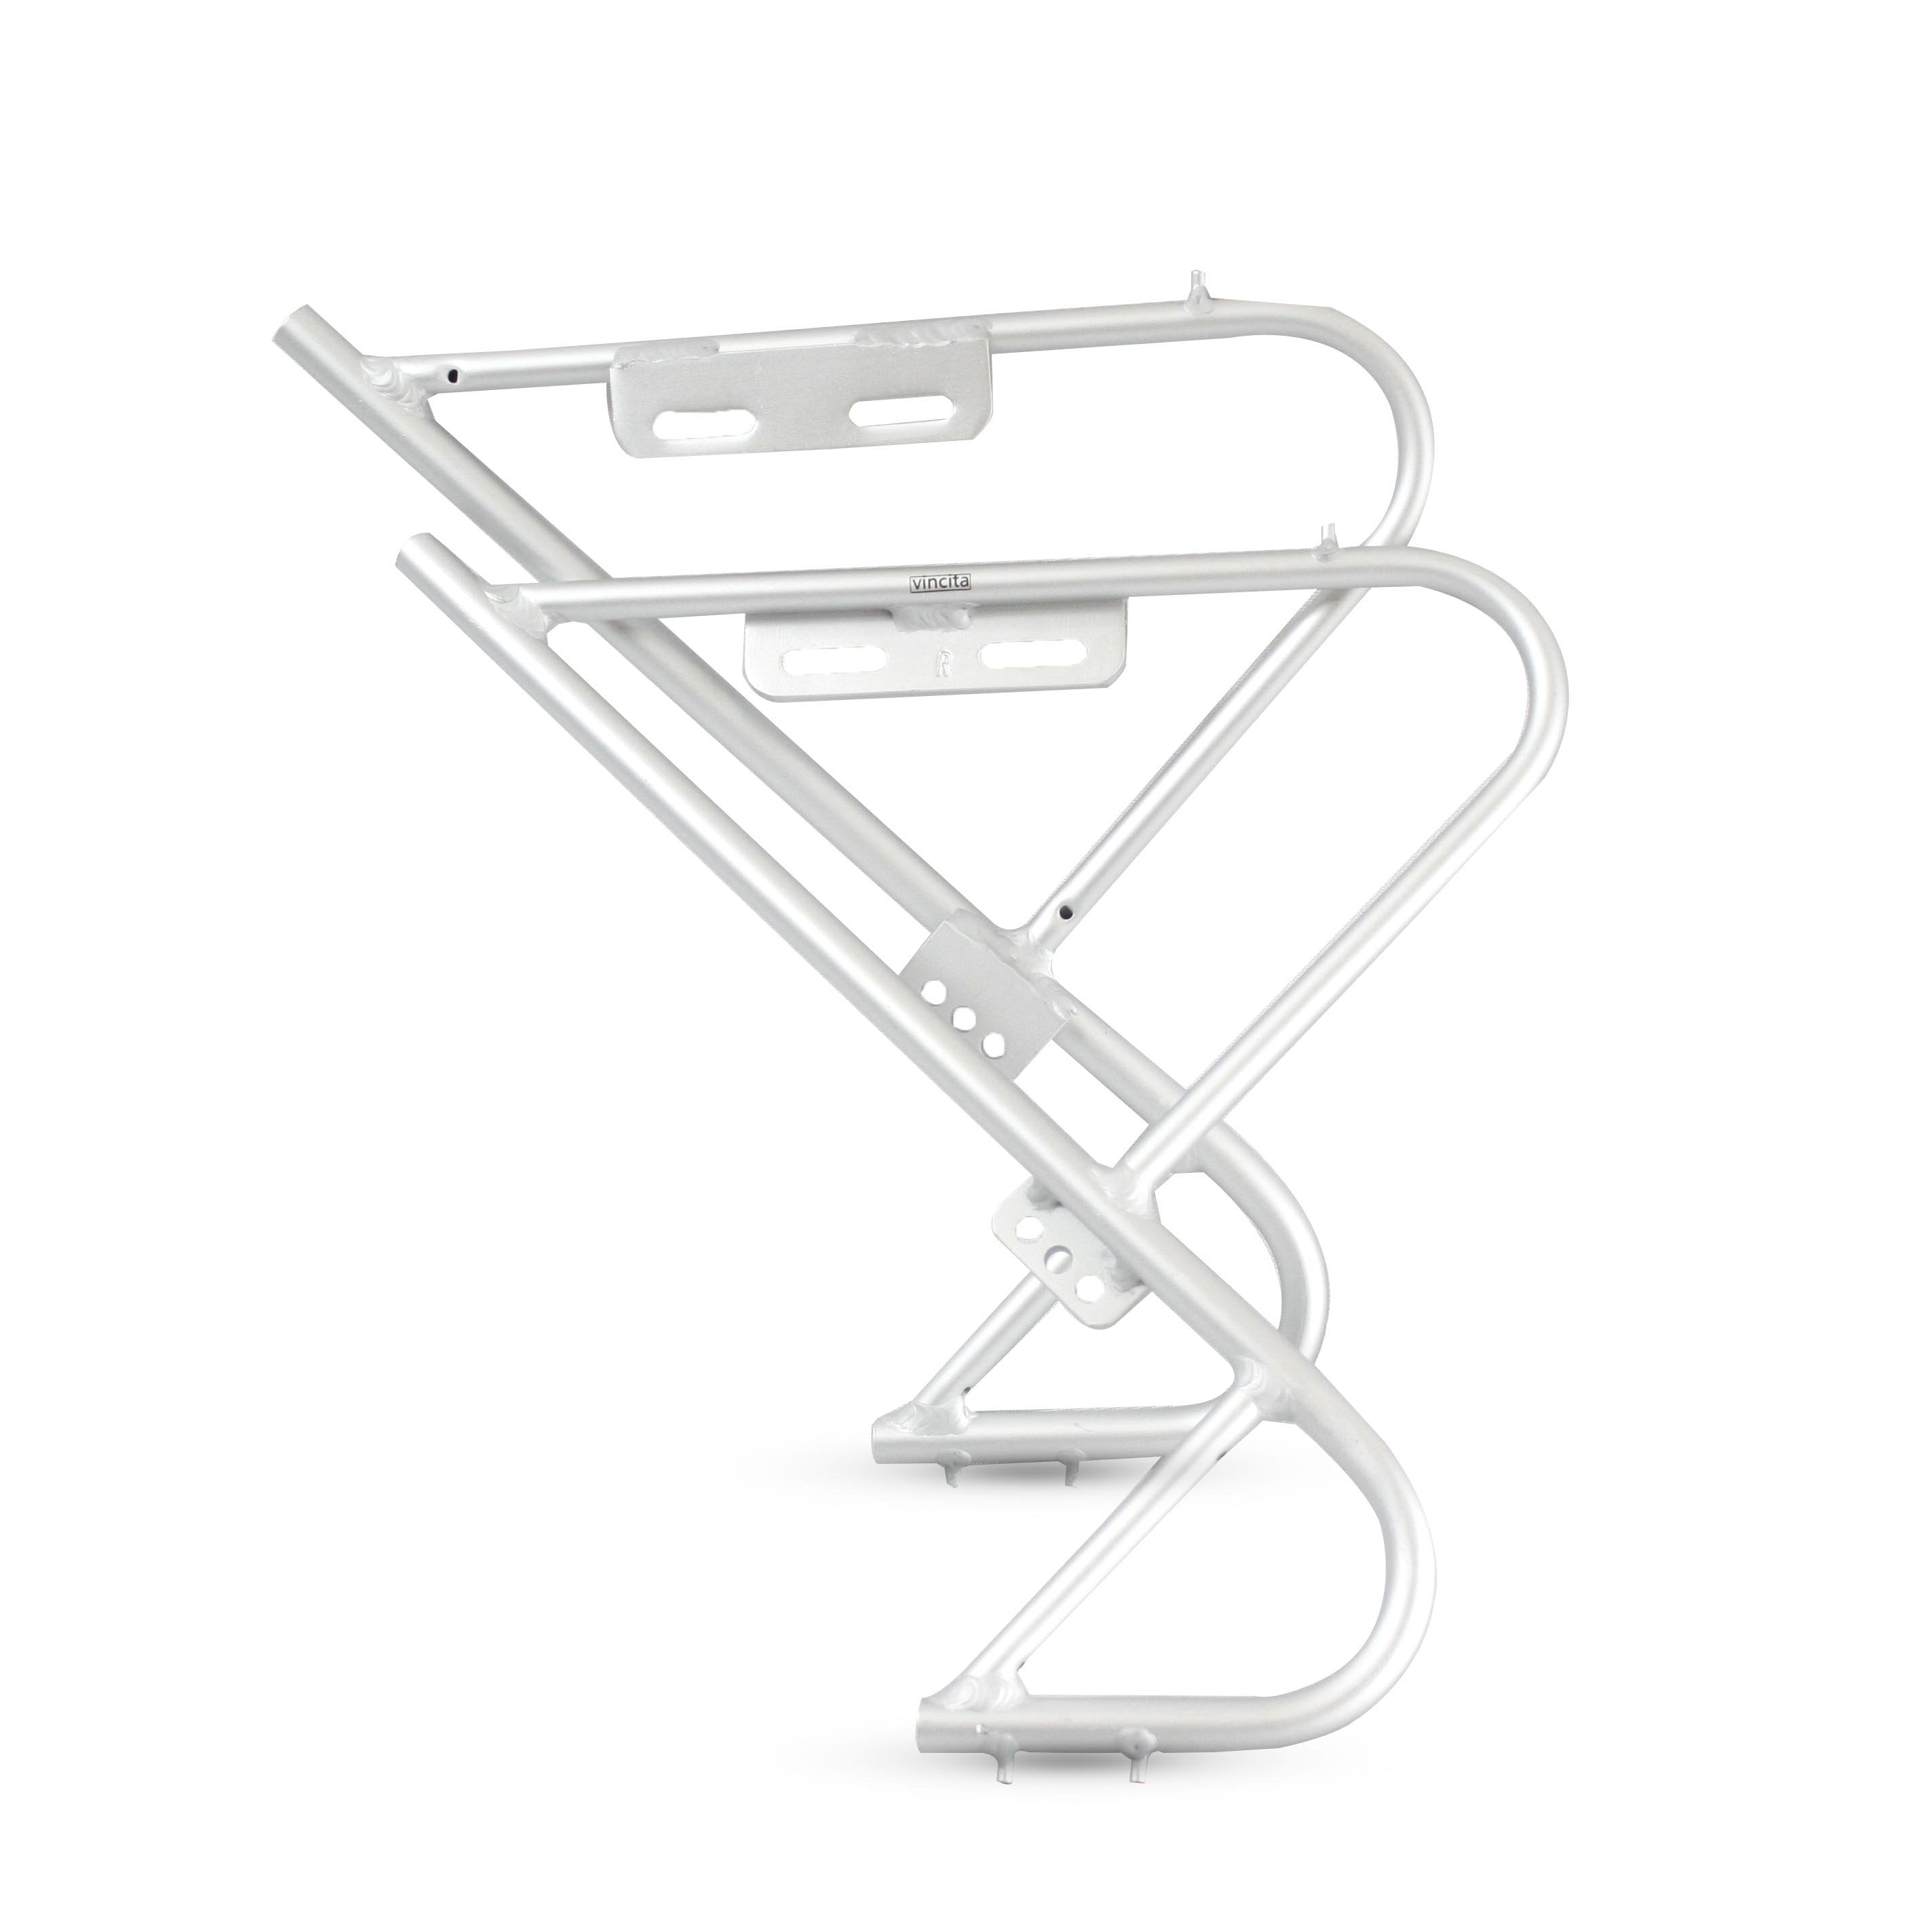 Vincita Co., Ltd. Silver / th C013 Low rider bike carrier